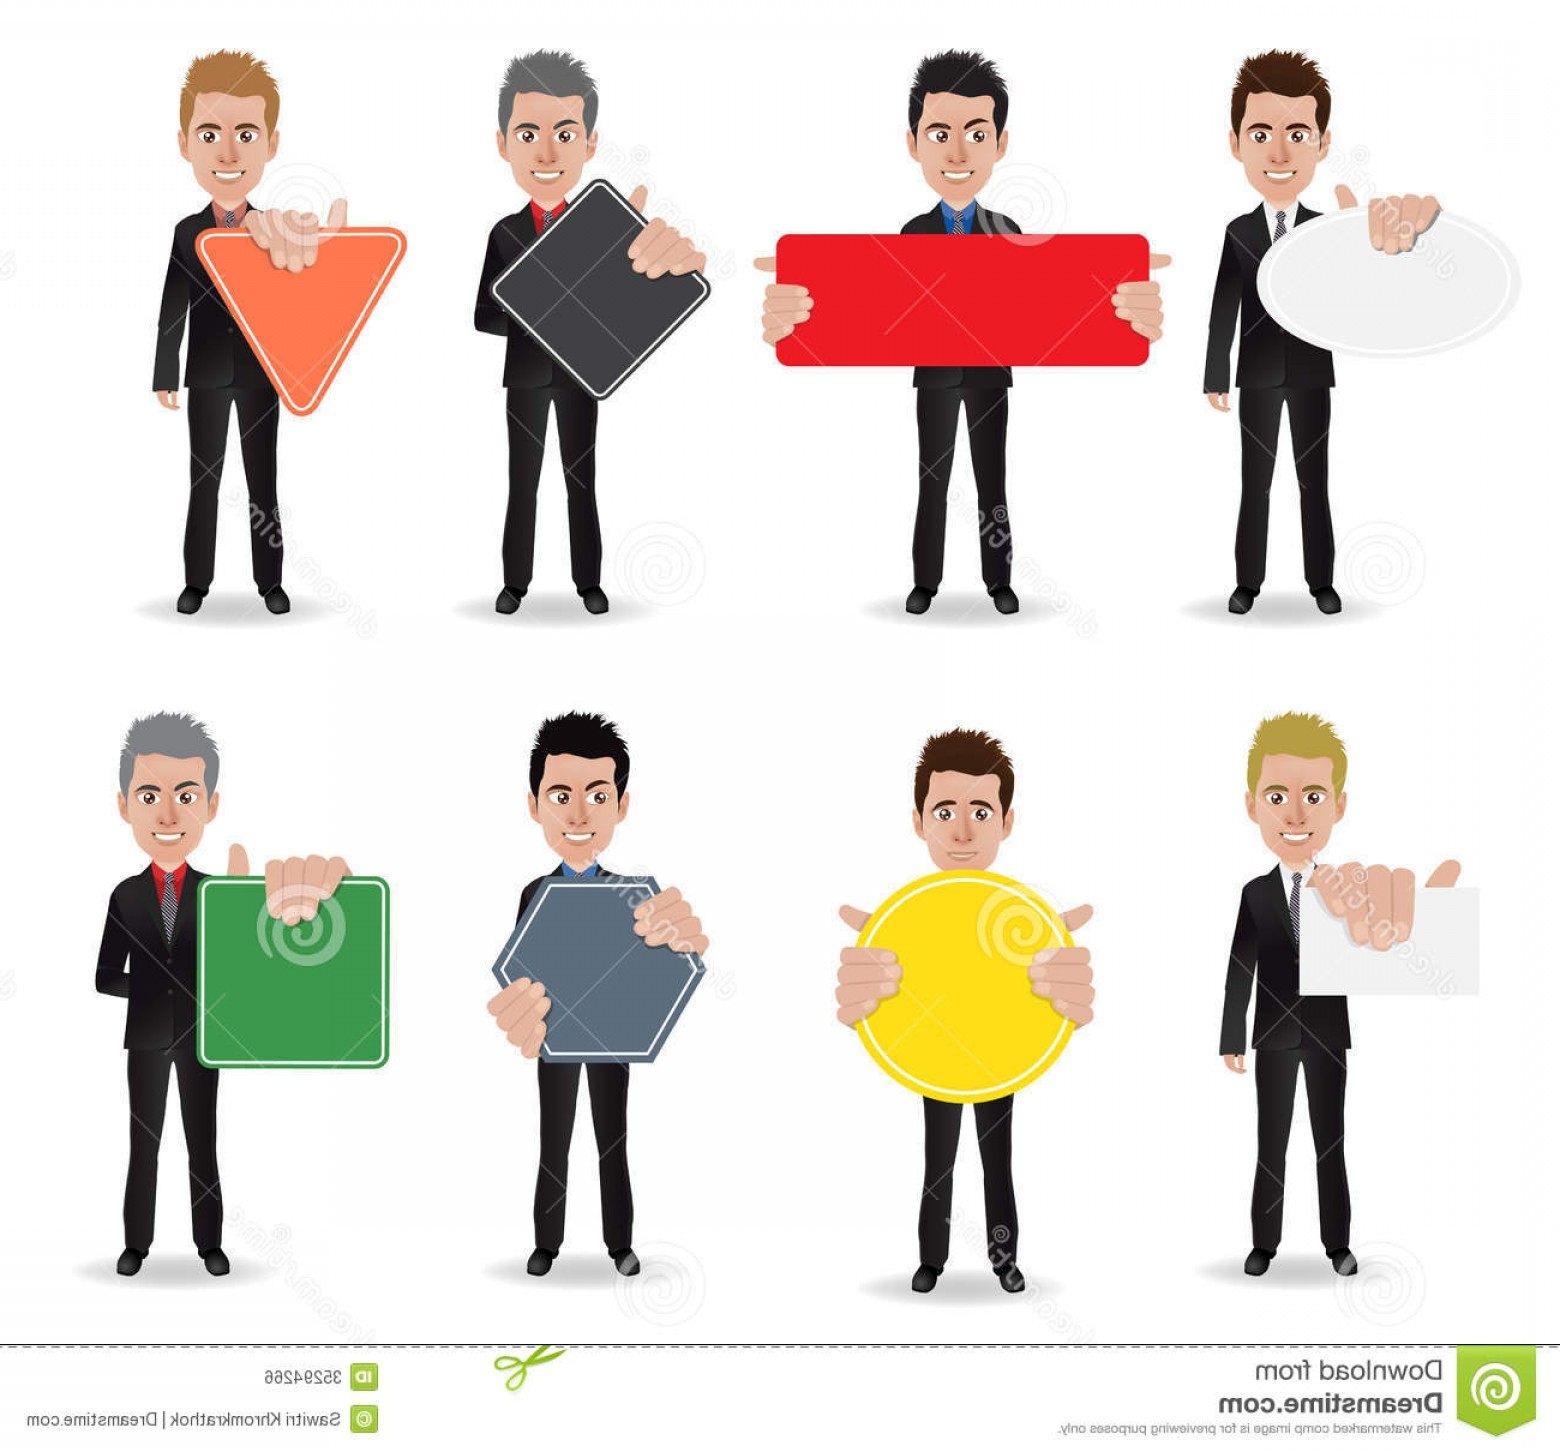 Vector Person Holding: Royalty Free Stock Image Vector Business Man Parts Body Template Design Work Image